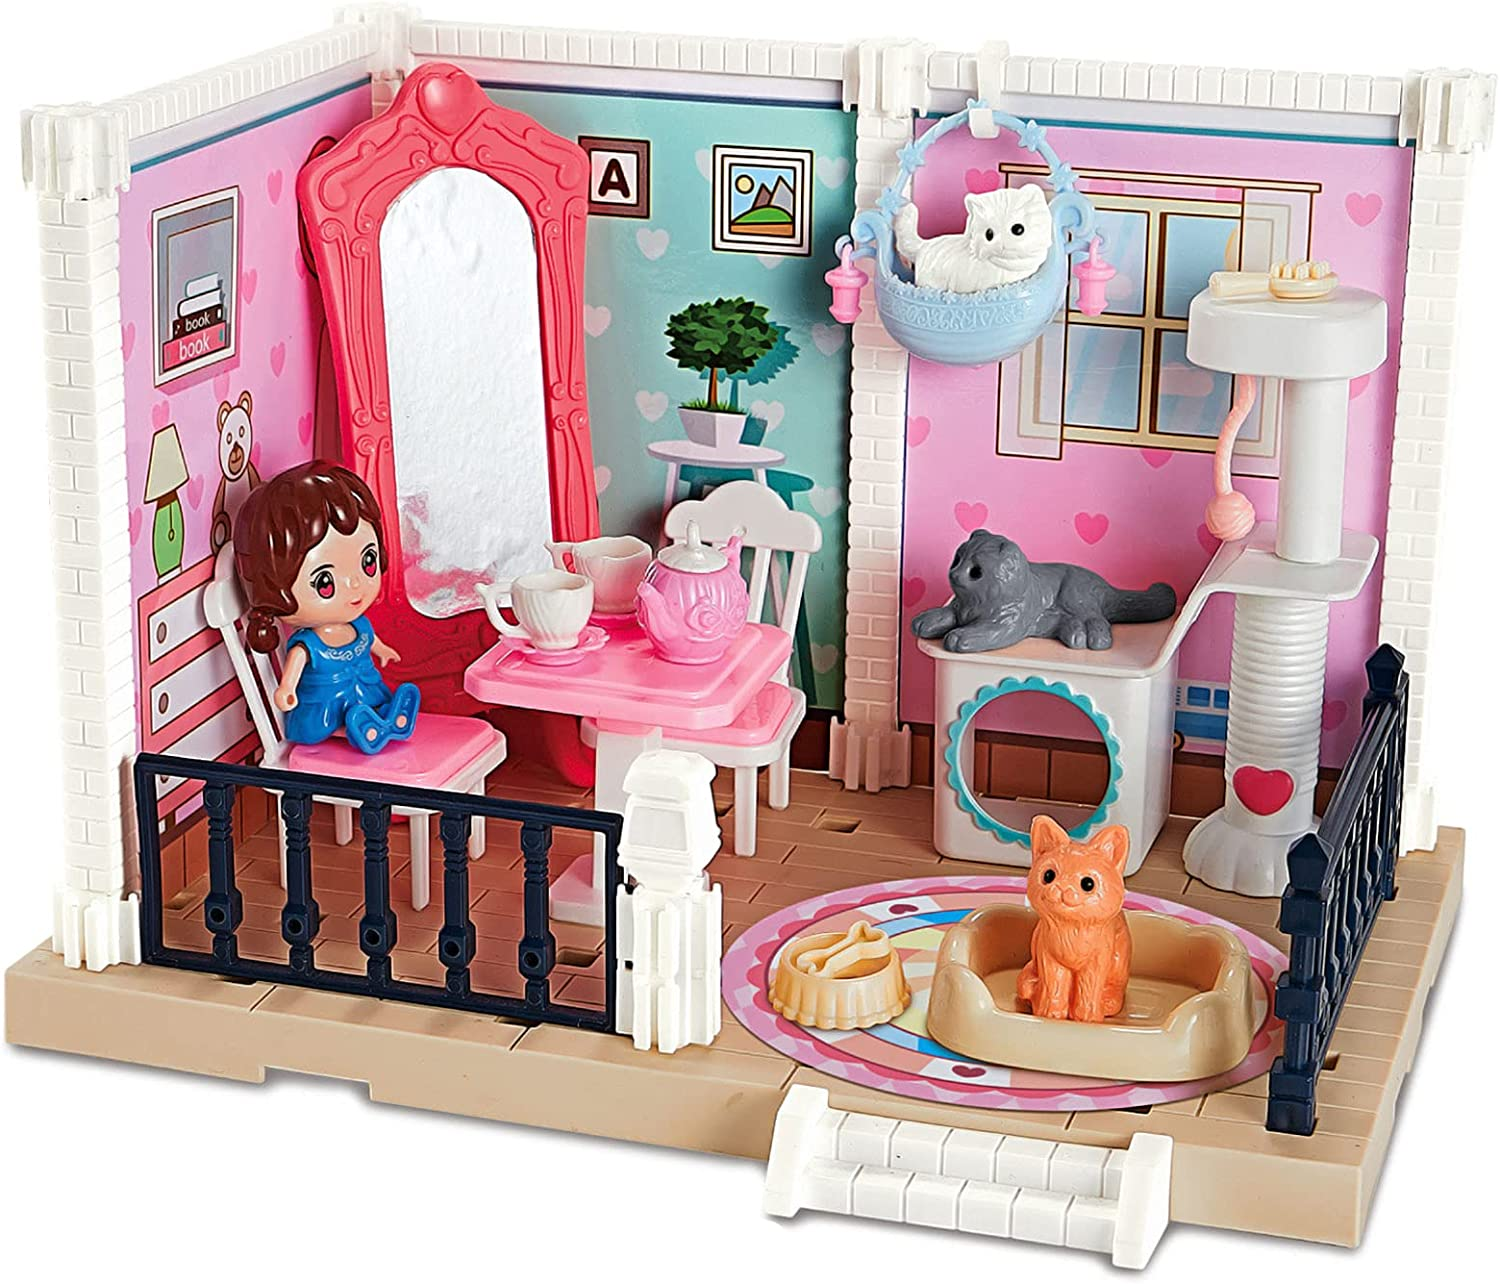 WSYKC Doll House Kit DIY Dollhouse Liv Miniature All items free shipping Toy Outlet sale feature